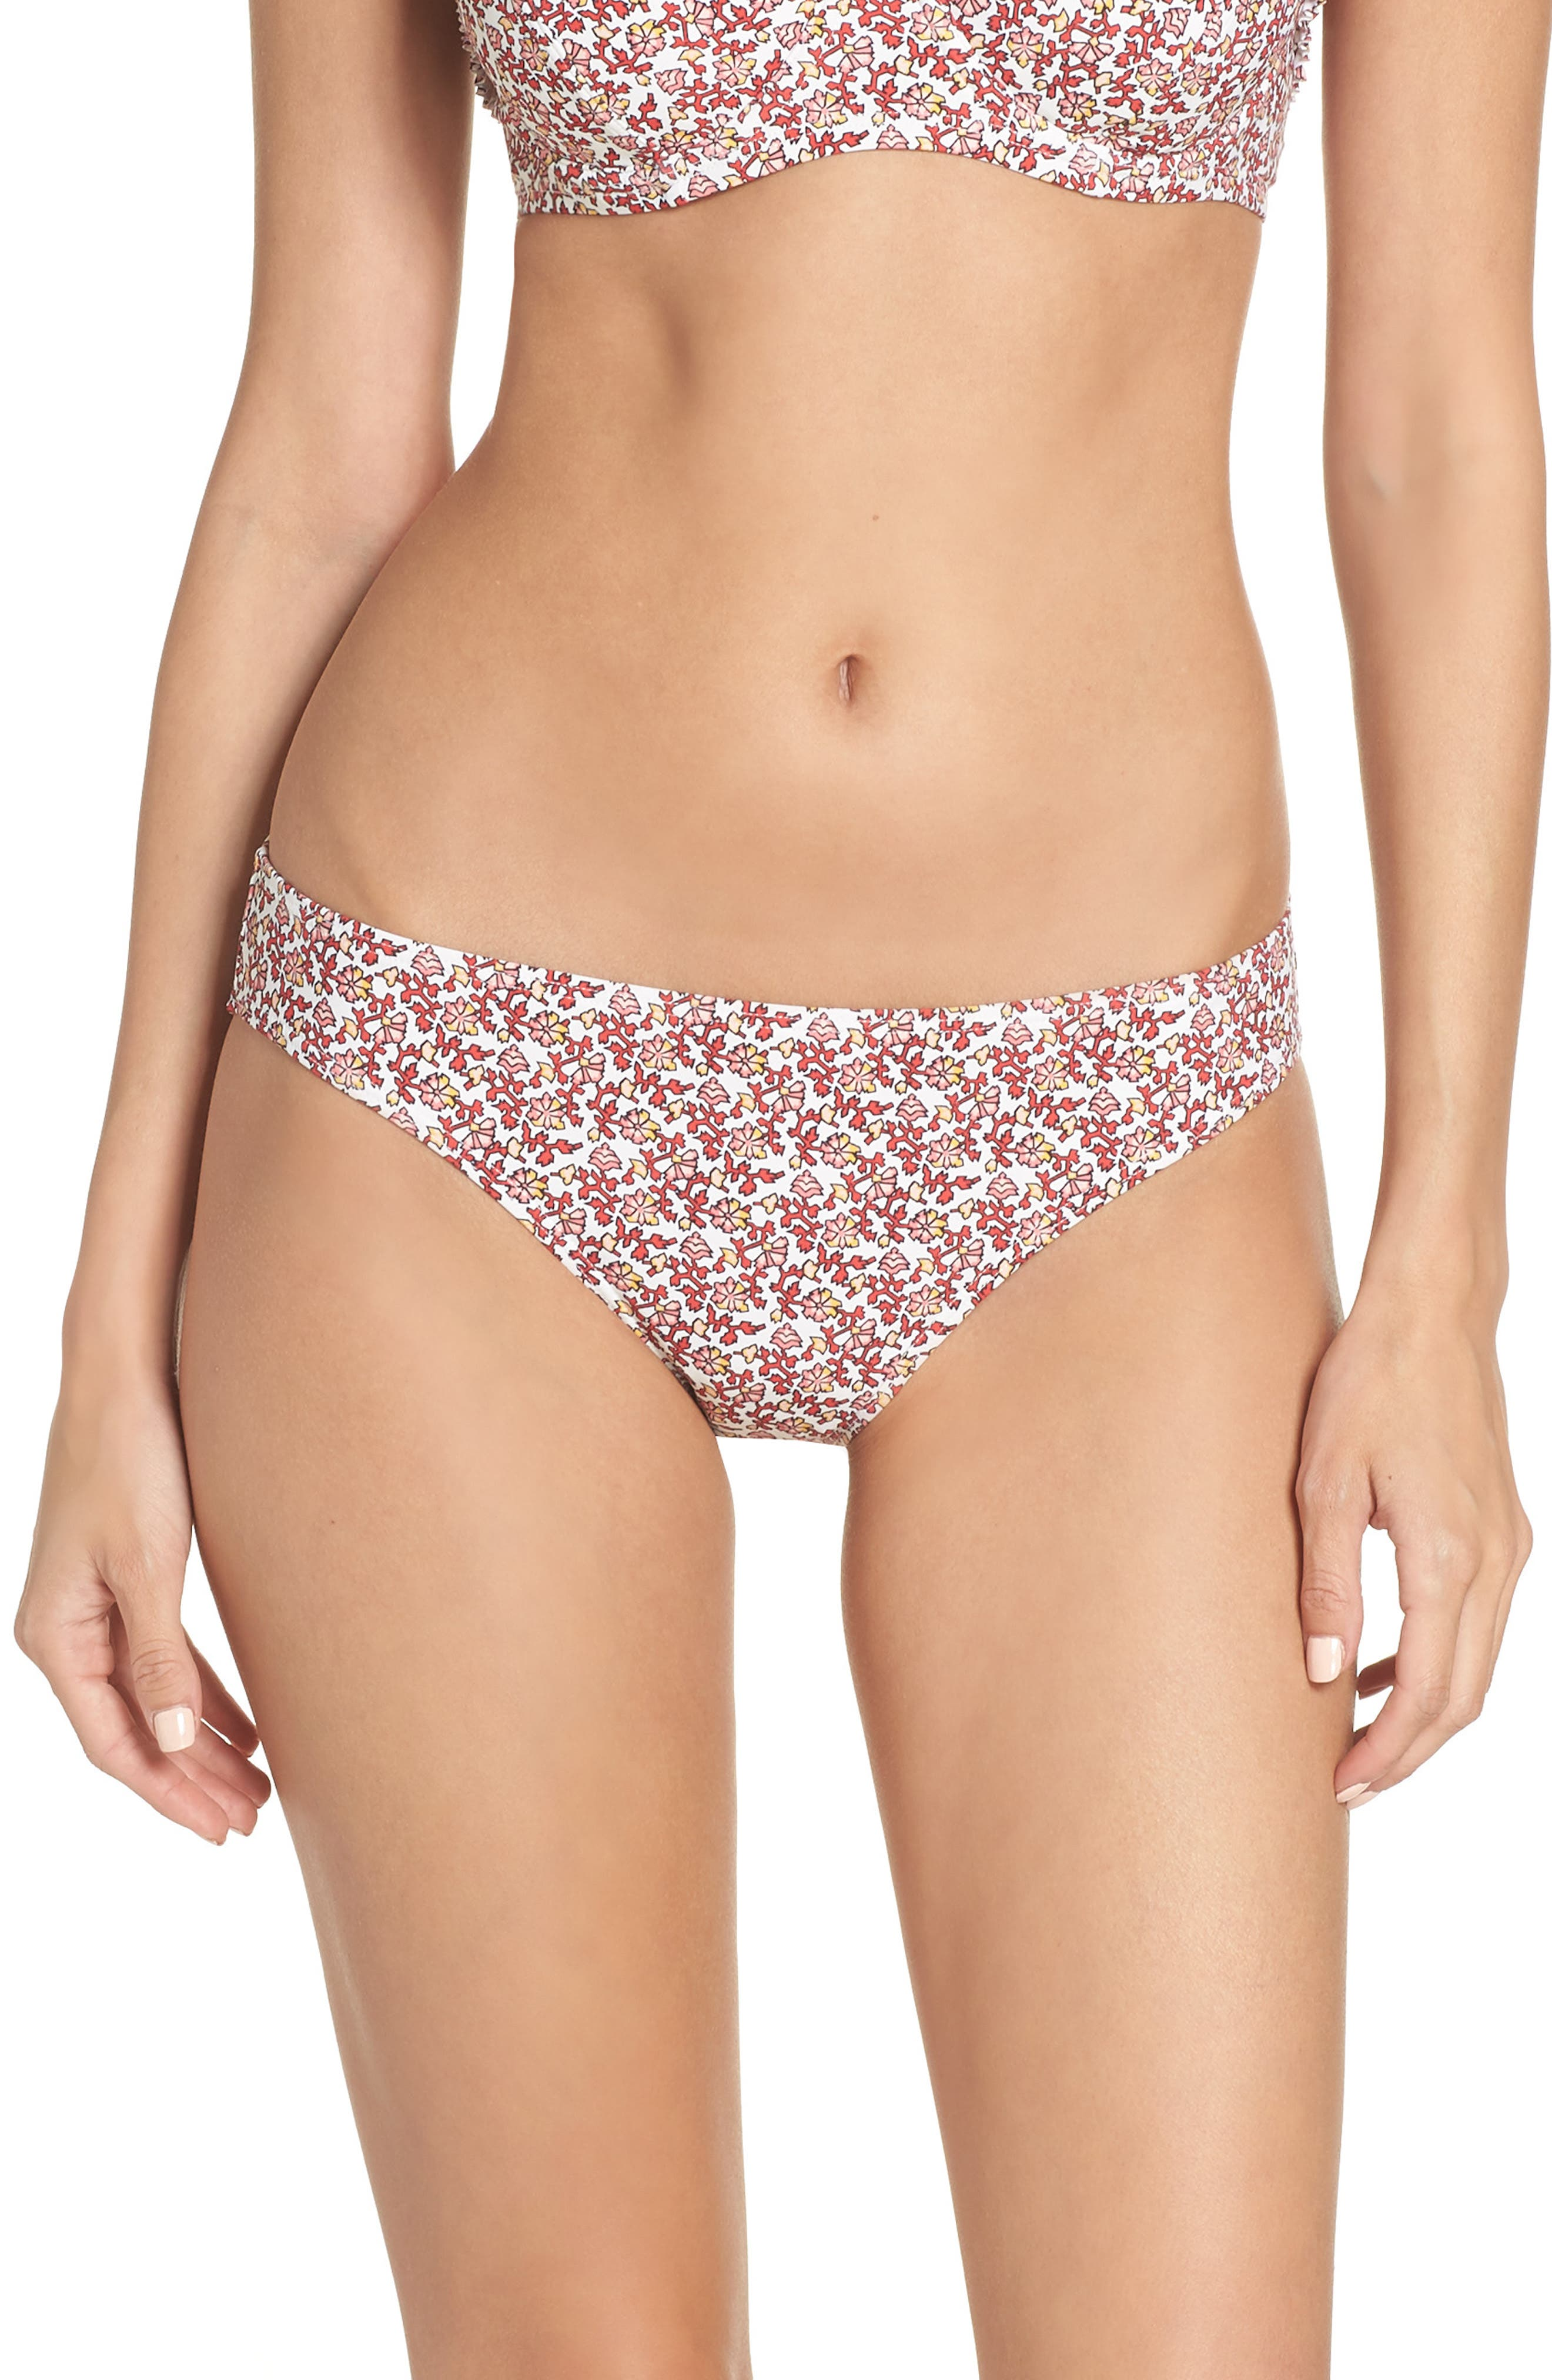 Wild Pansy Hipster Bikini Bottoms in Wild Pansy Mini